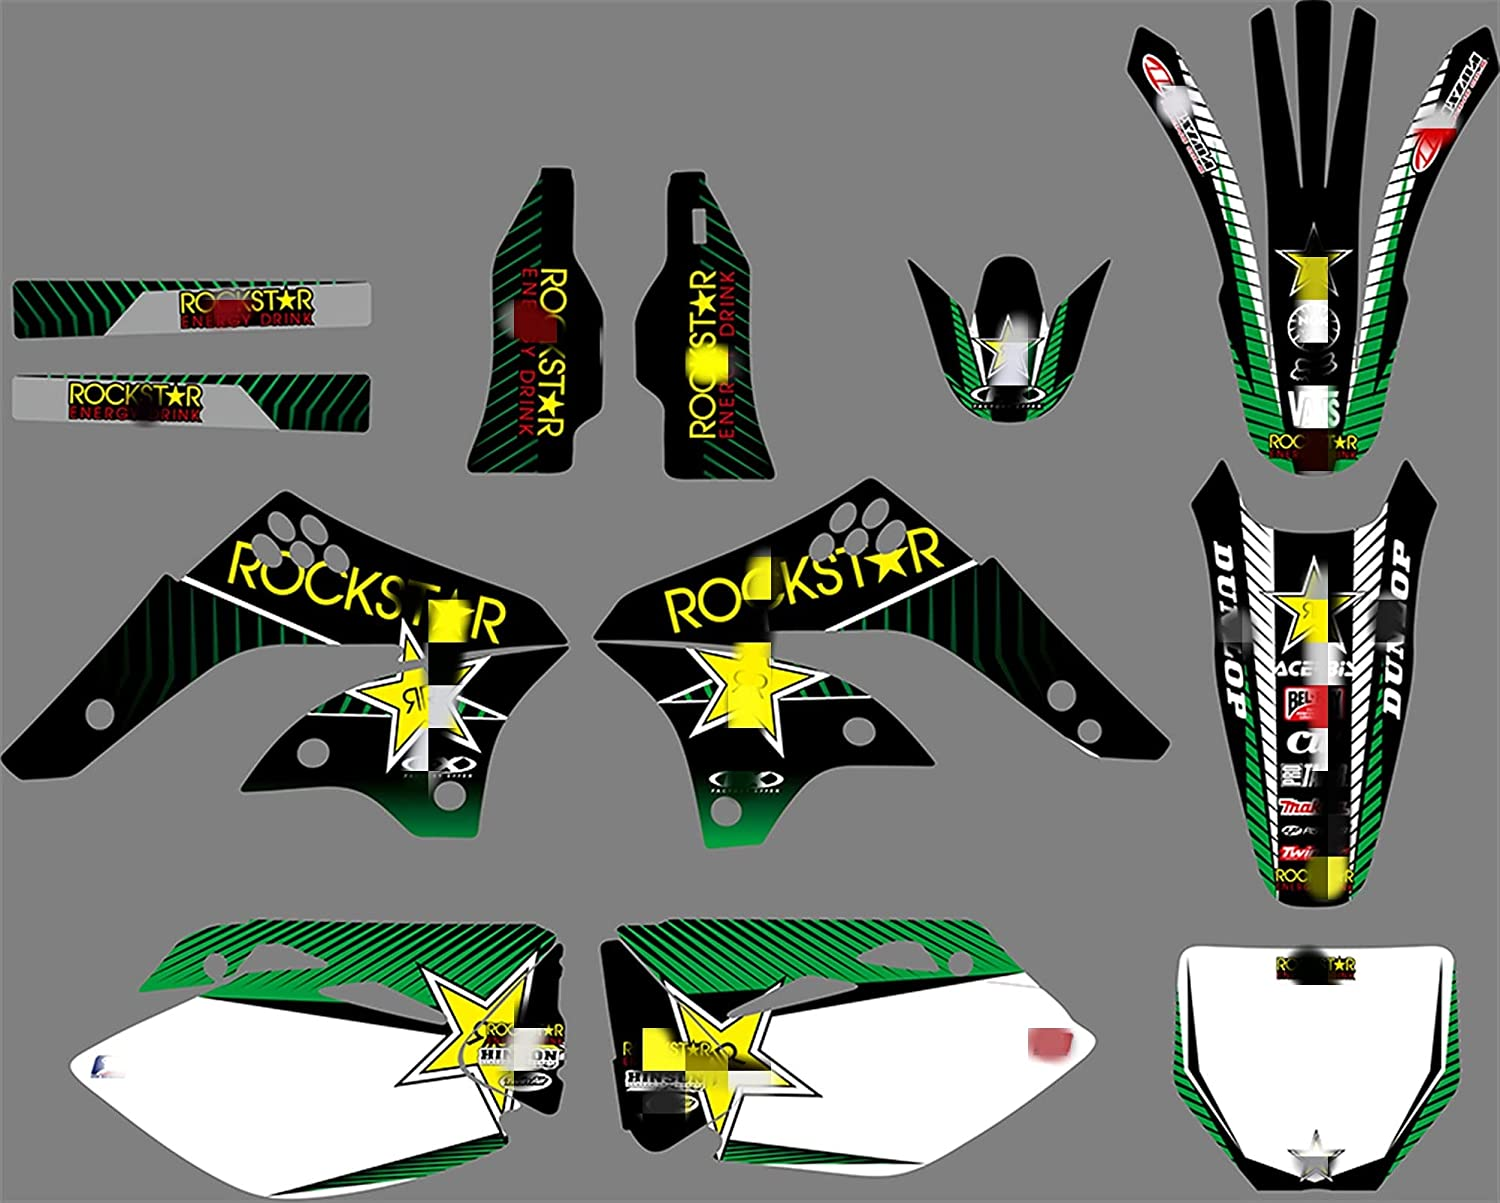 Tatumyin Long-awaited PJDST-5 Customized 3M Graphi Decals Stickers Super sale period limited Motorcycle